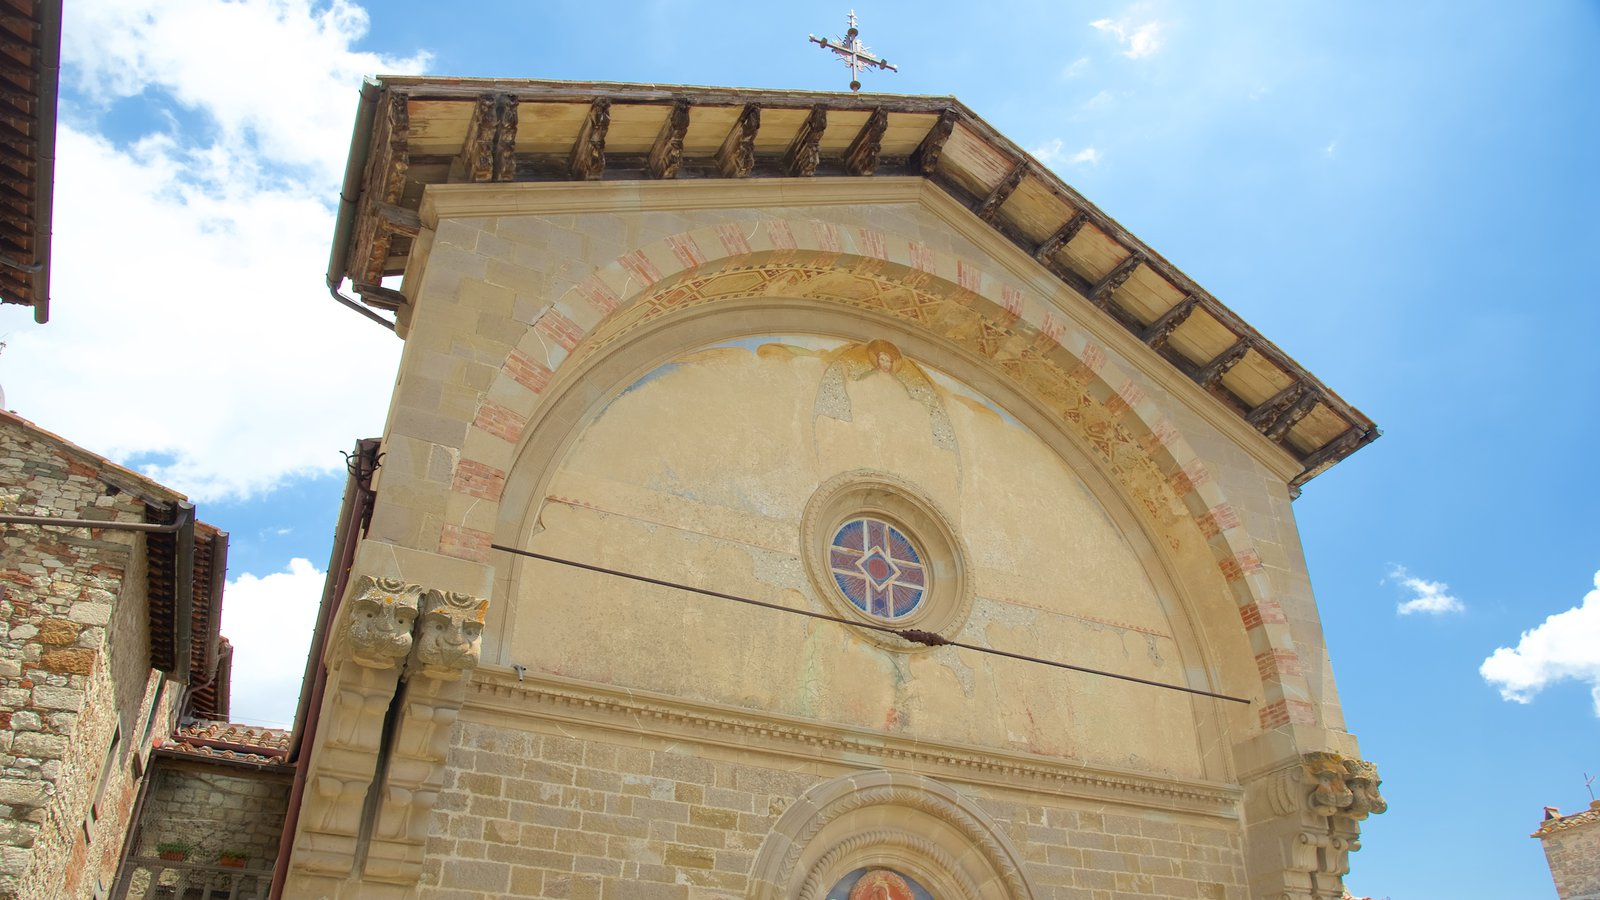 Radda in Chianti showing heritage architecture, a church or cathedral and a small town or village